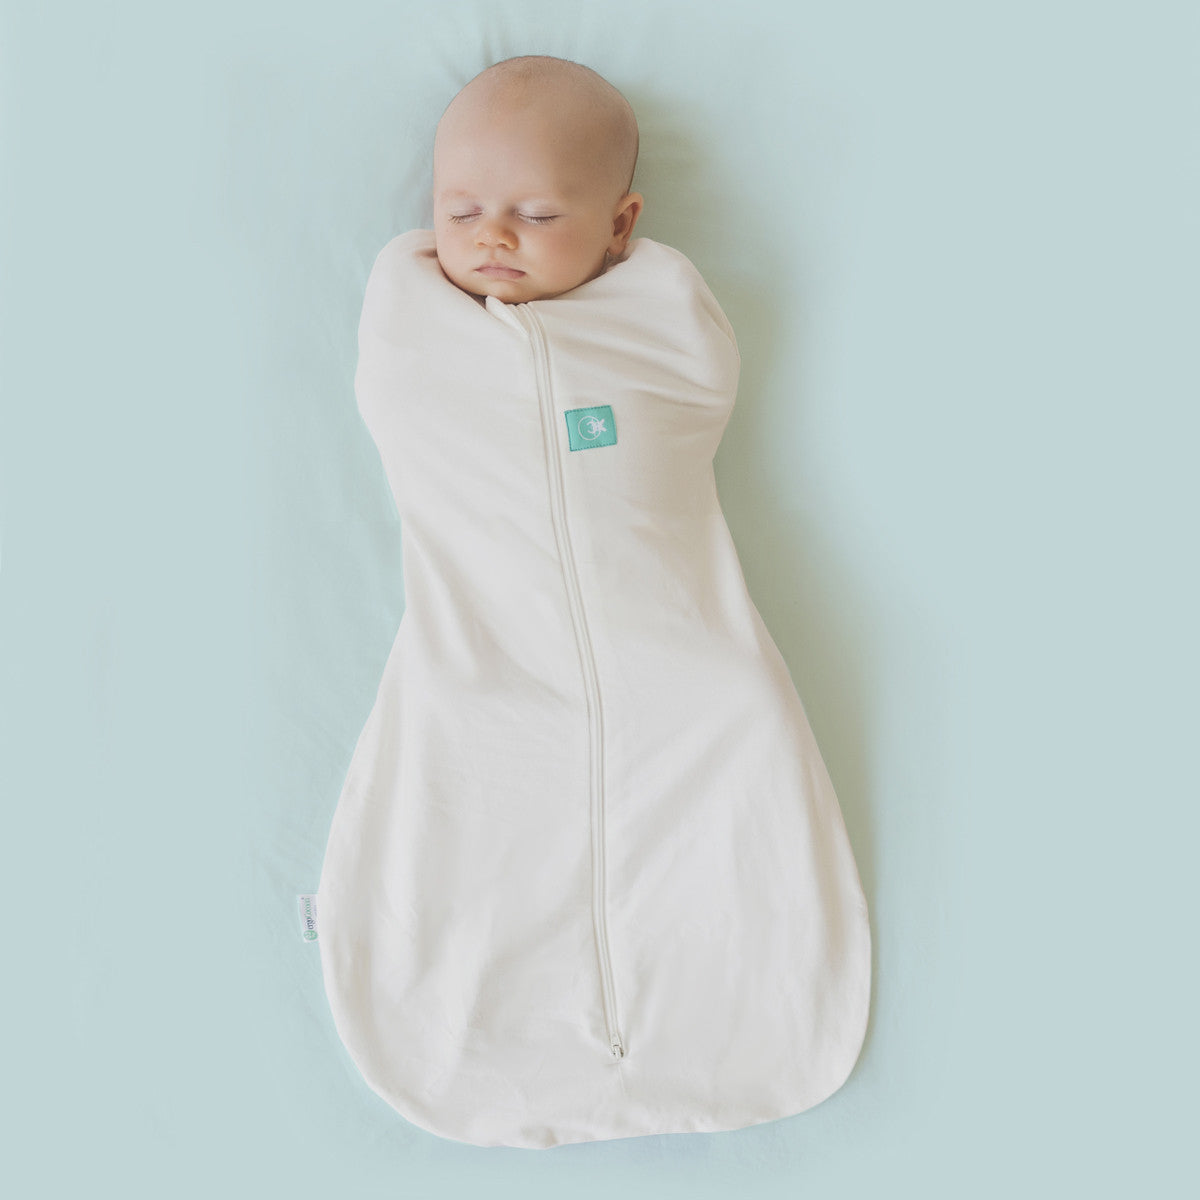 Photo of baby swaddled with both arms in.